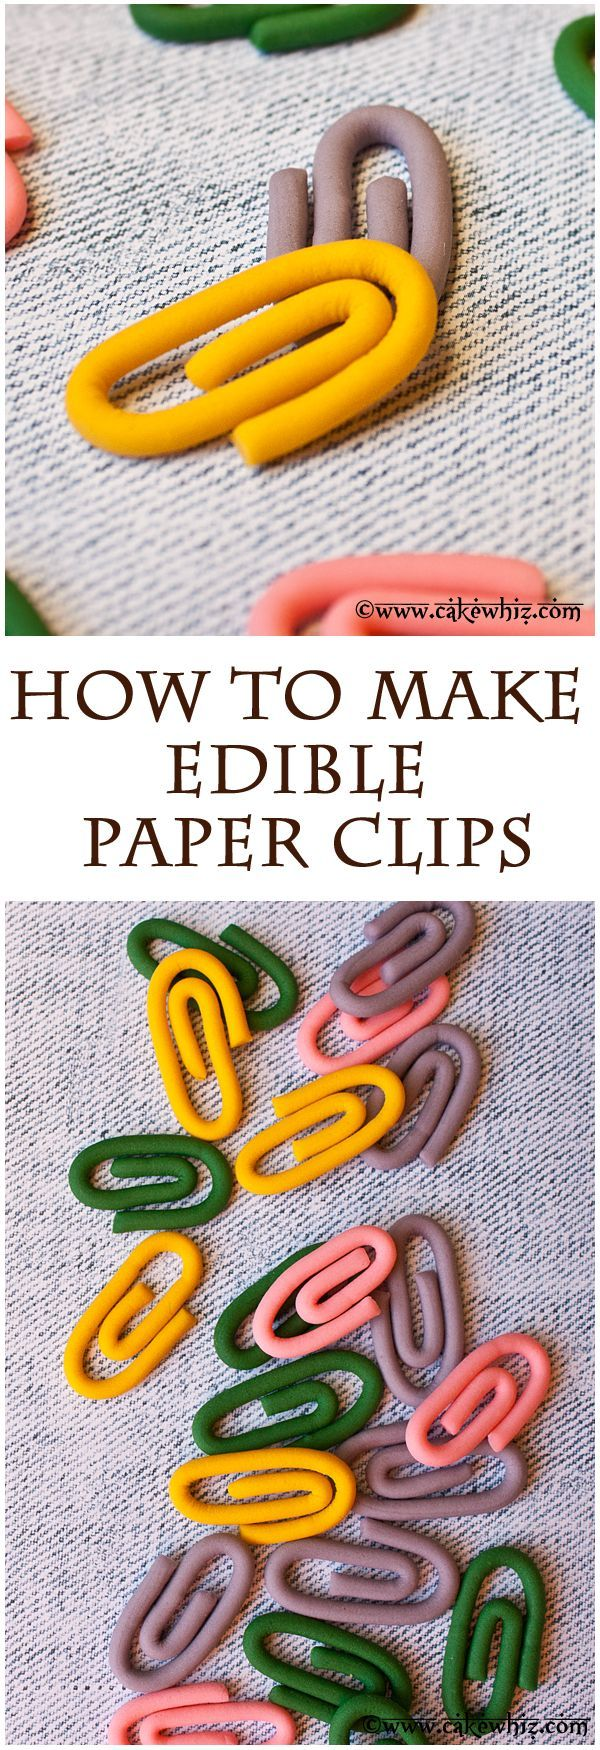 how to make edible figures